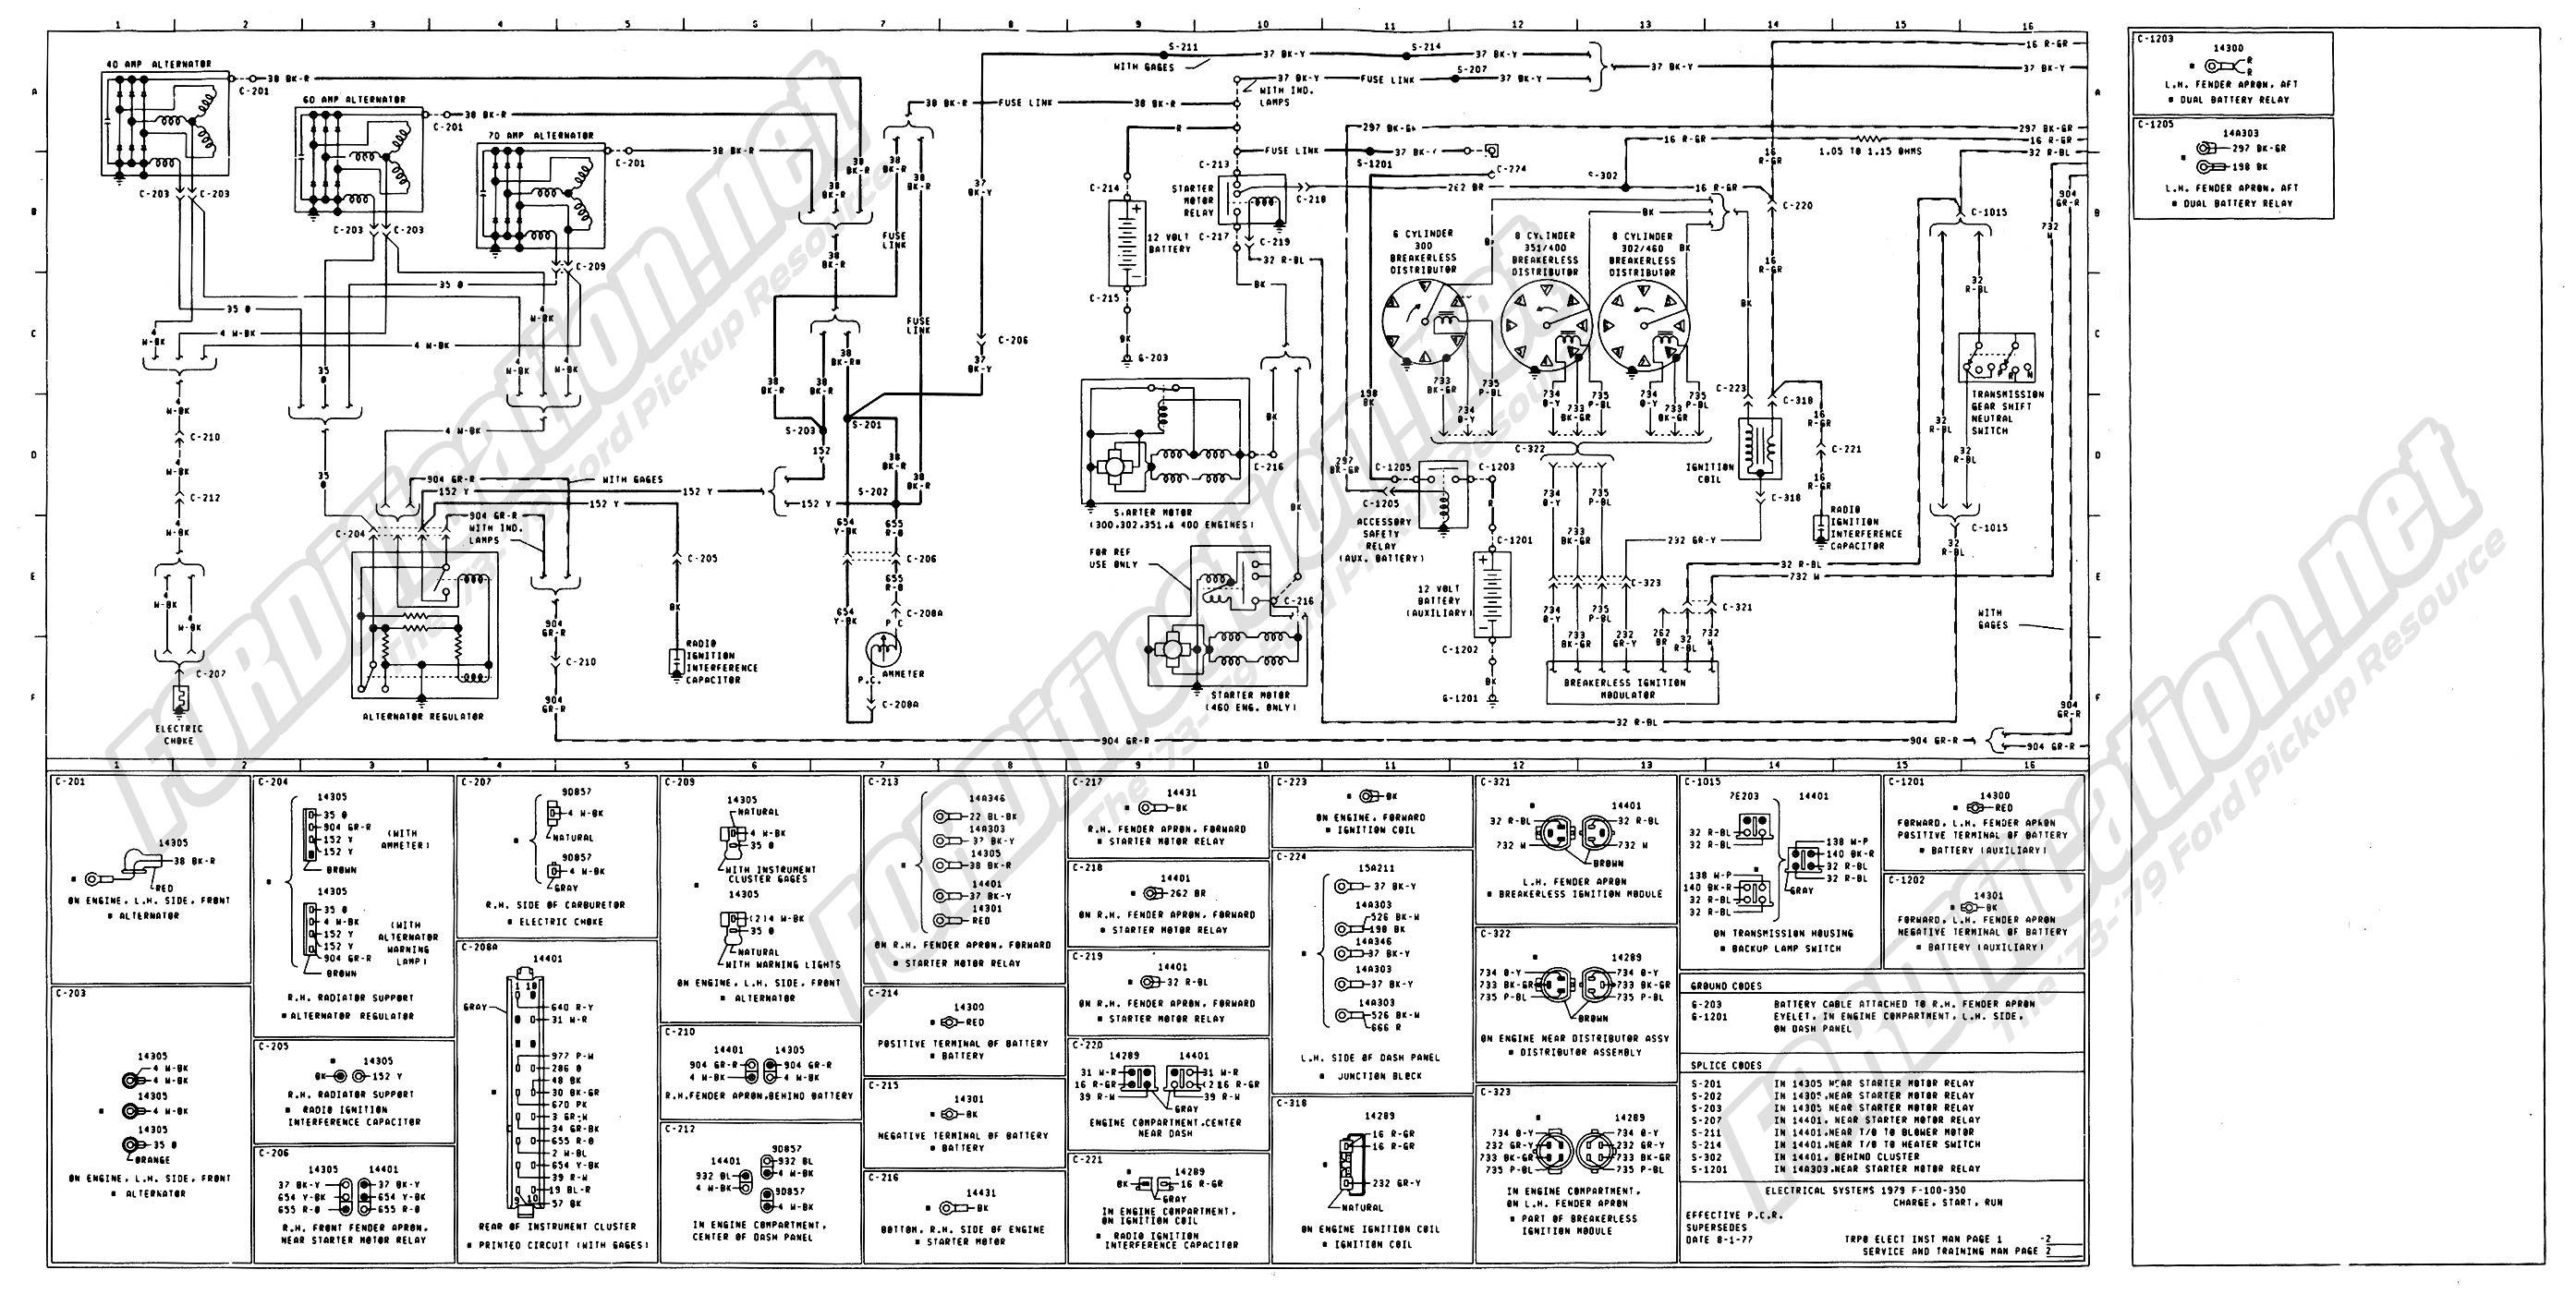 1979 ford f 150 wiring schematic schematic diagram Minneapolis Moline Wiring Diagrams 1973 1979 ford truck wiring diagrams \\u0026 schematics fordification net international harvester wiring schematic 1979